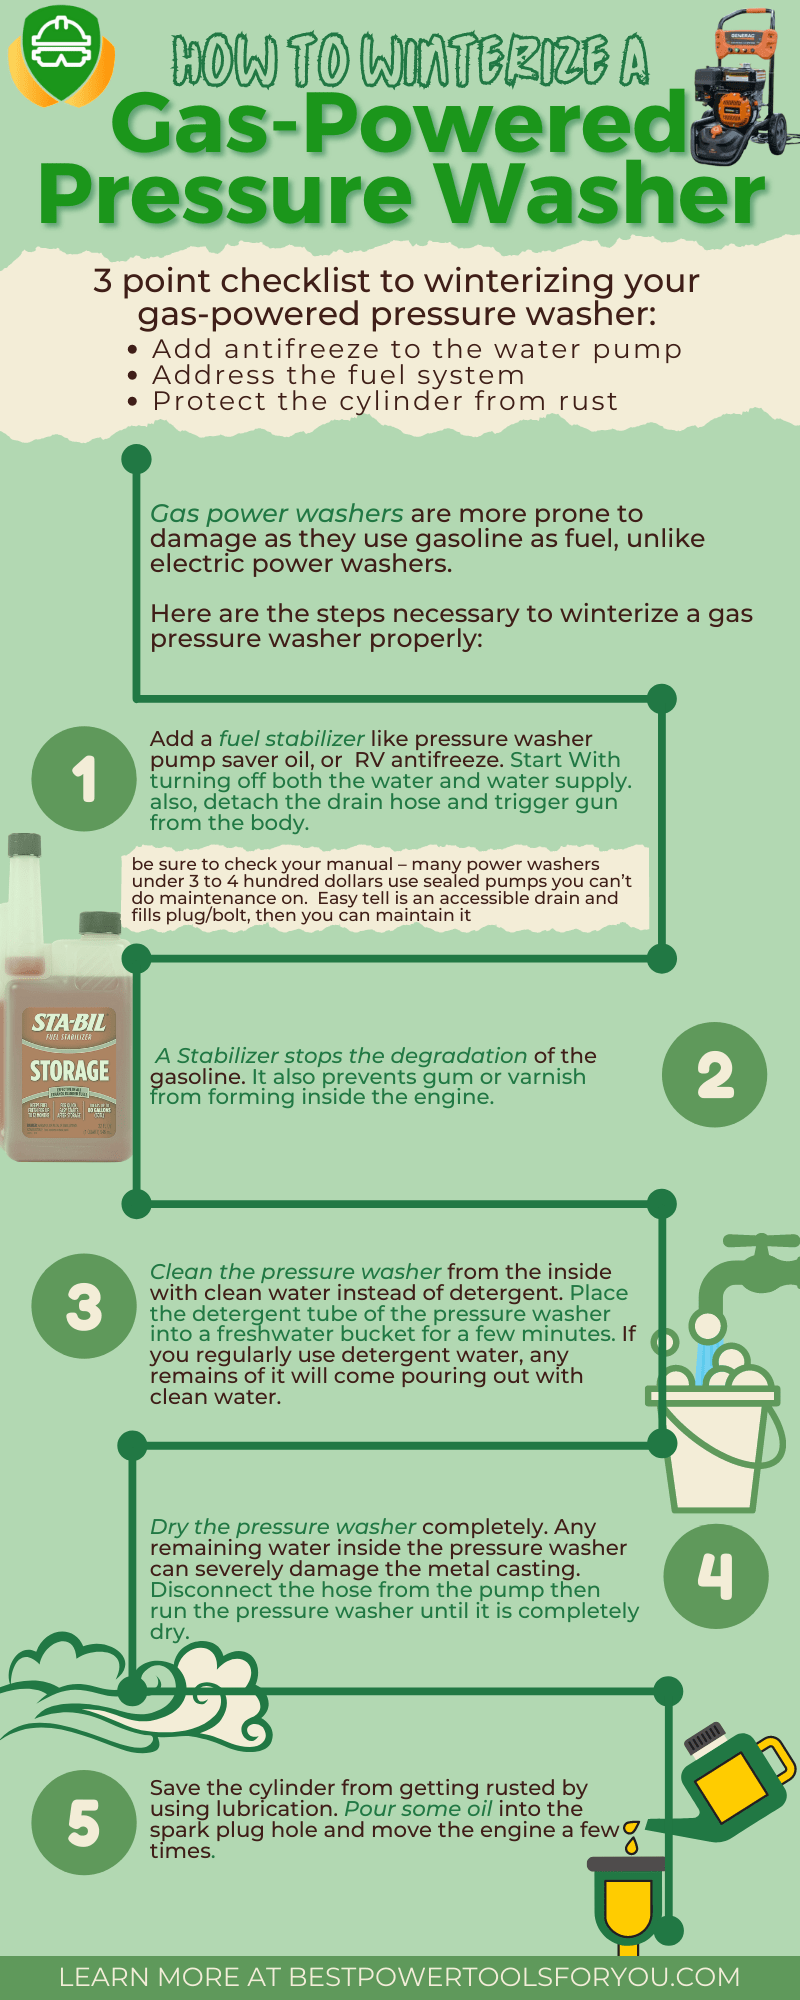 Infographic on how to winterize a gas pressure washer